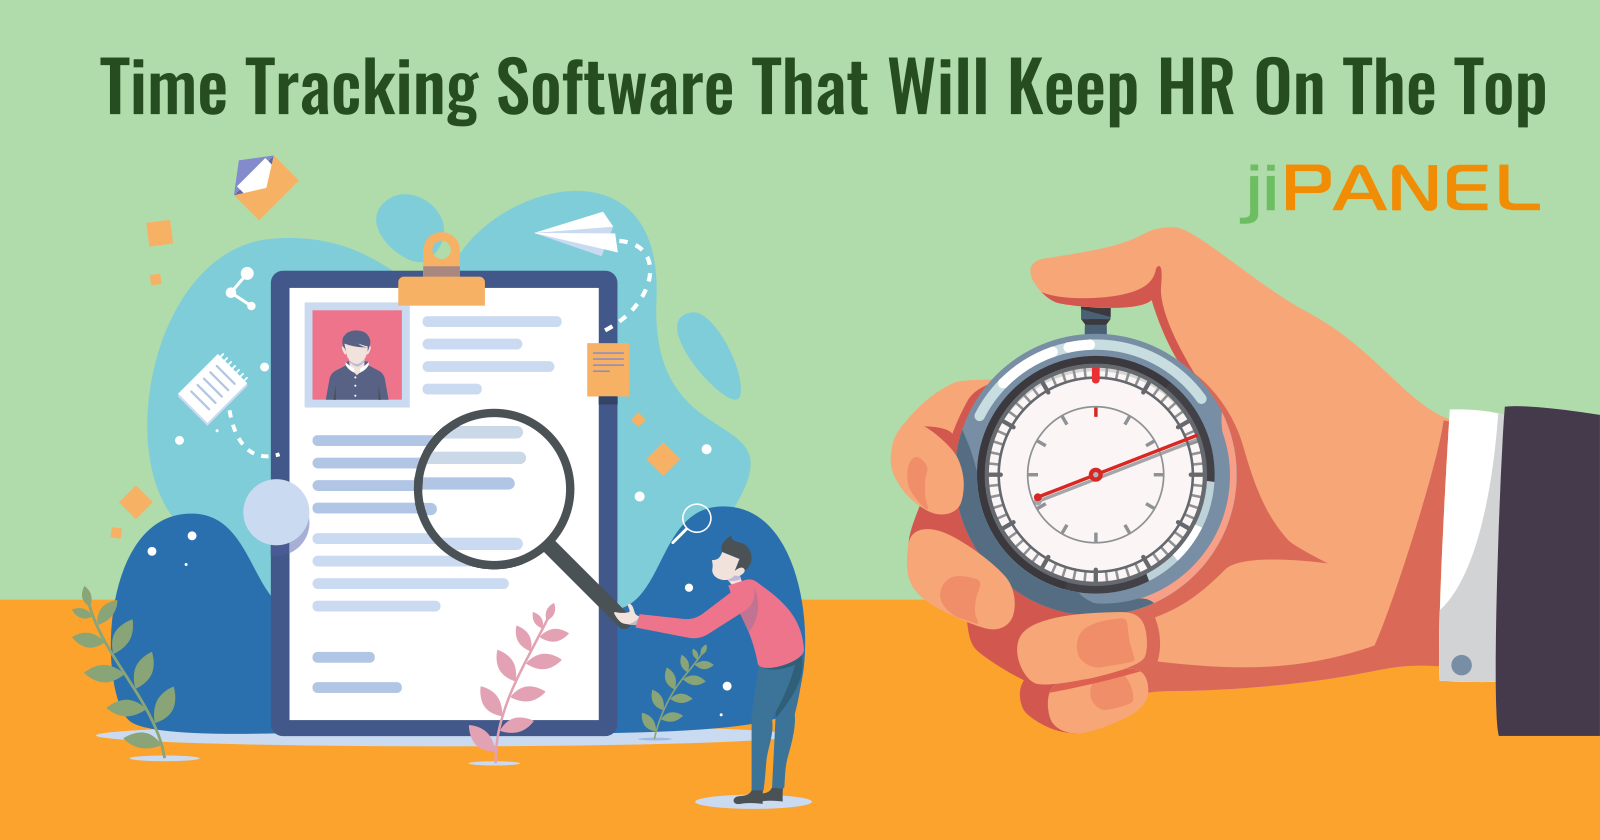 Time Tracking Software That Will Keep HR On The Top